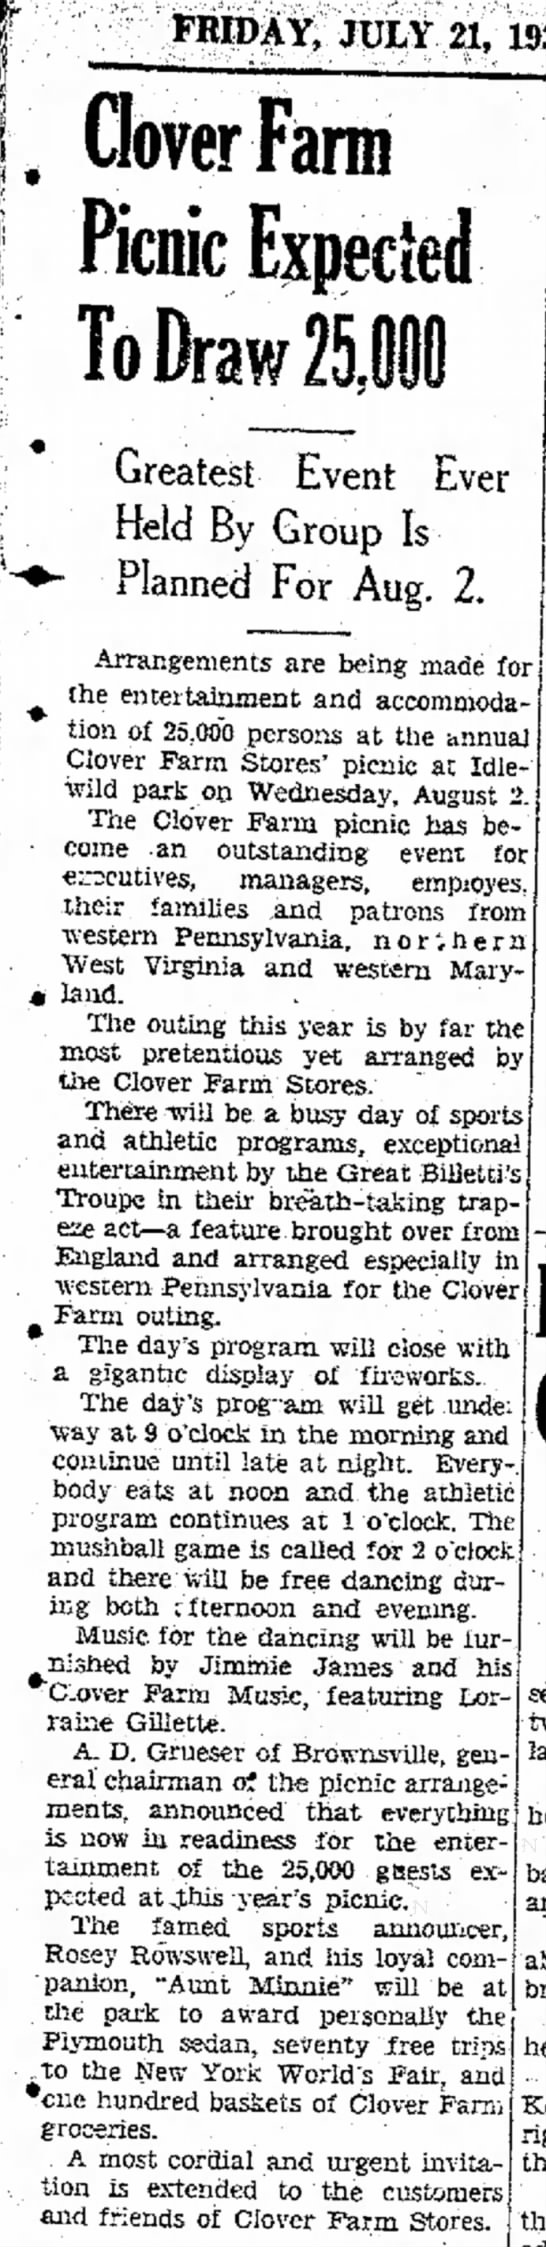 Billetti - July 21, 1939The Evening Standard Uniontown PA - FRIDAY, JULY 21, Clover Farm Picnic Expected...